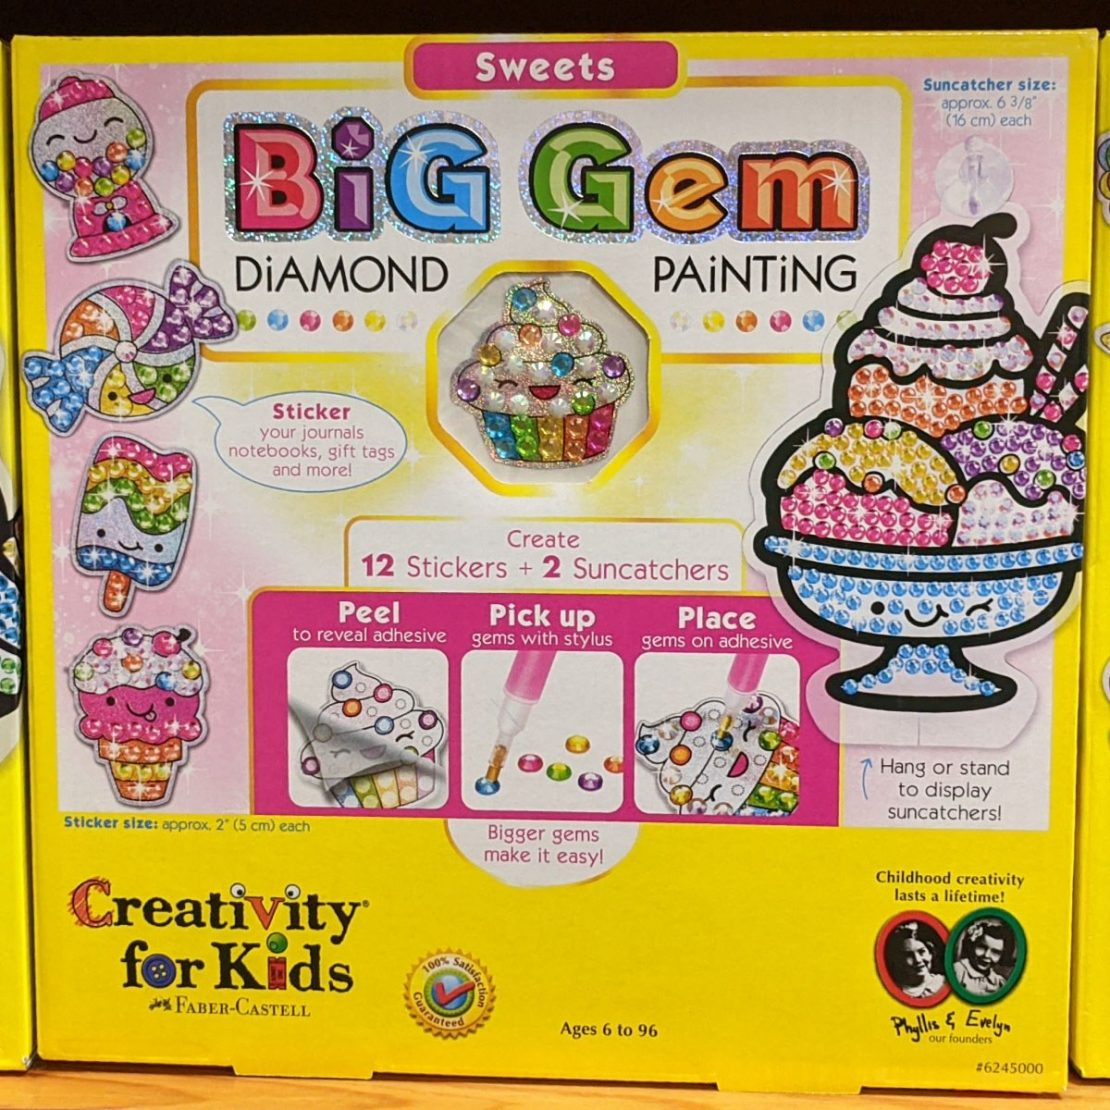 Sweets Big Gem Diamond Painting from Creativity for Kids